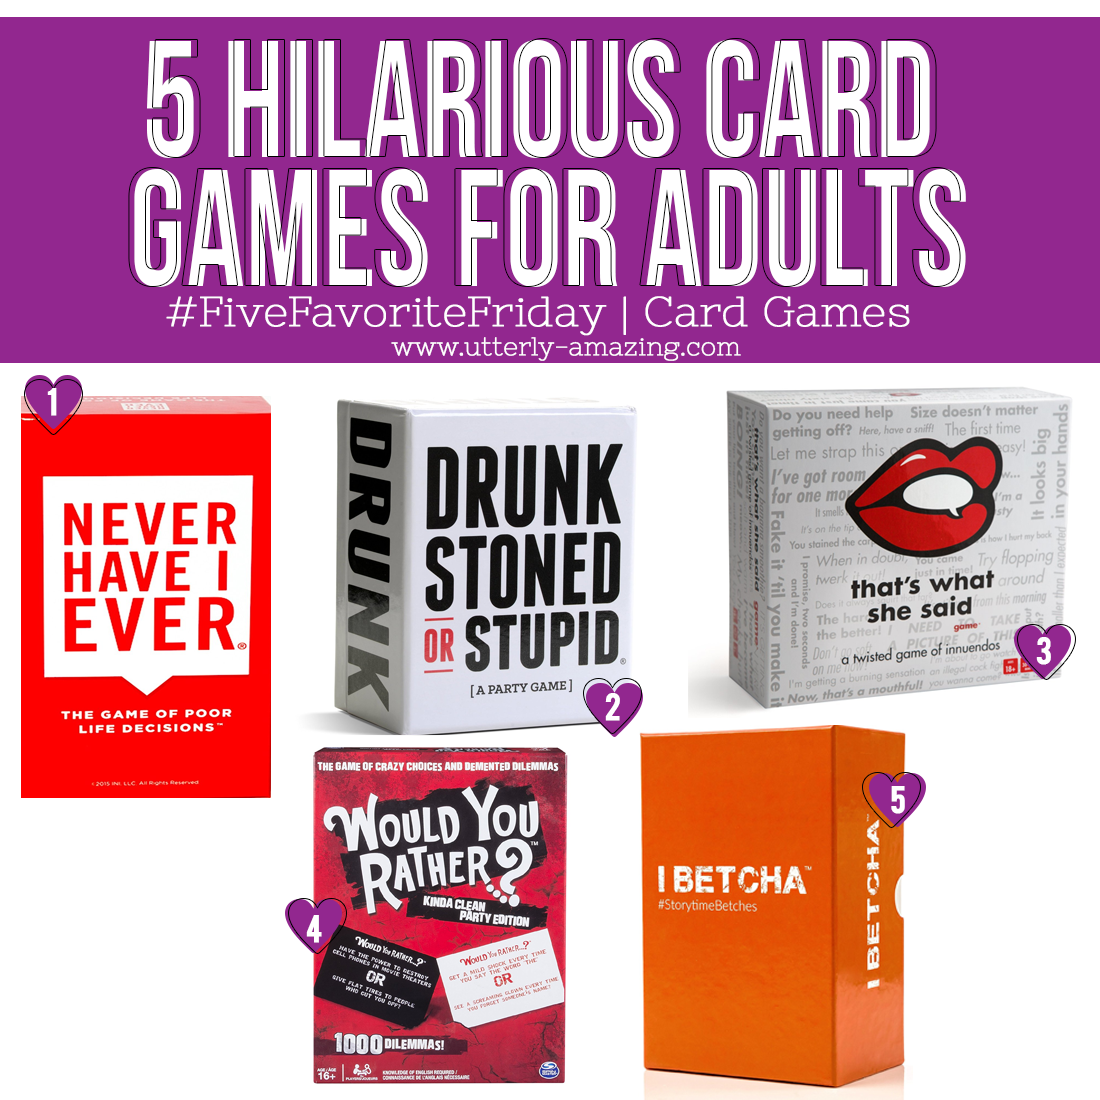 5 Hilarious Card Games For Adults   #FiveFavoriteFriday